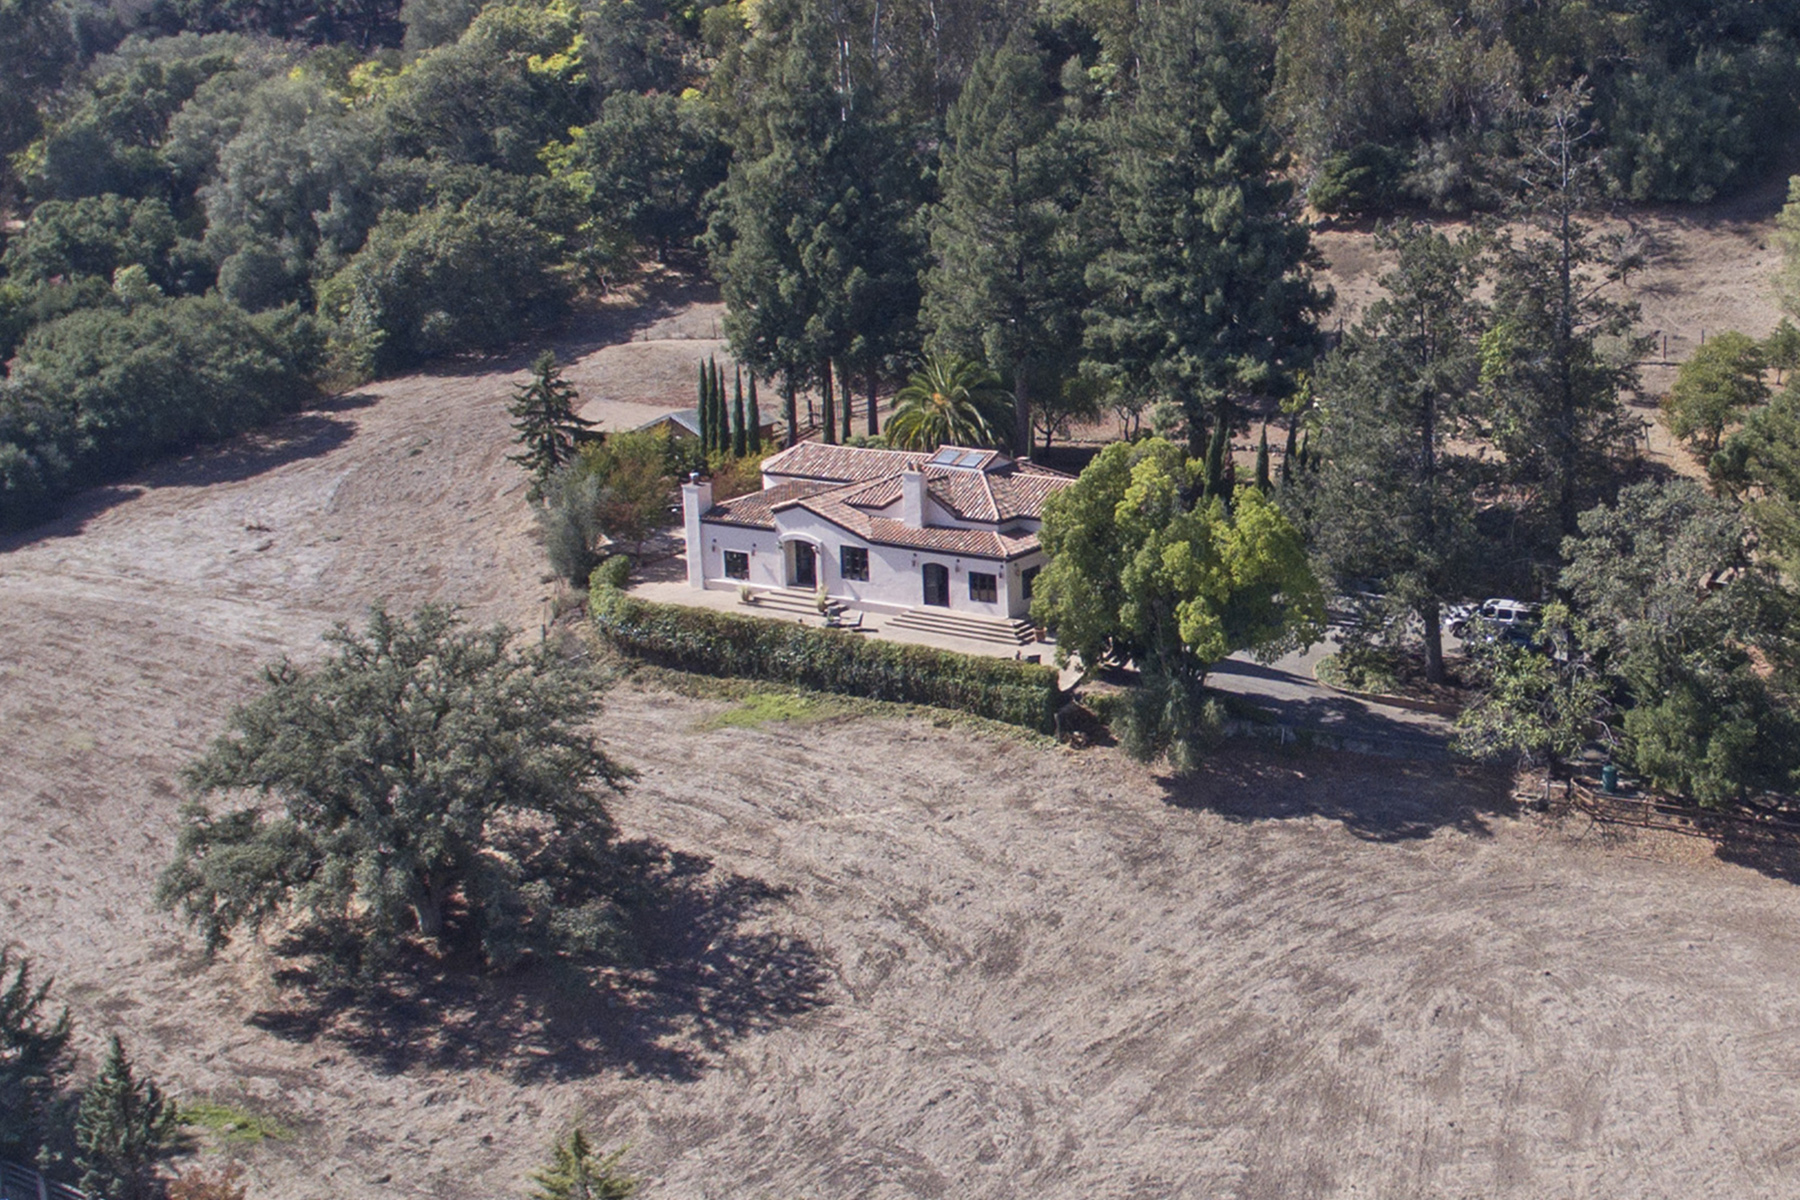 Property For Sale at 2937 Pine St, Napa, CA 94558